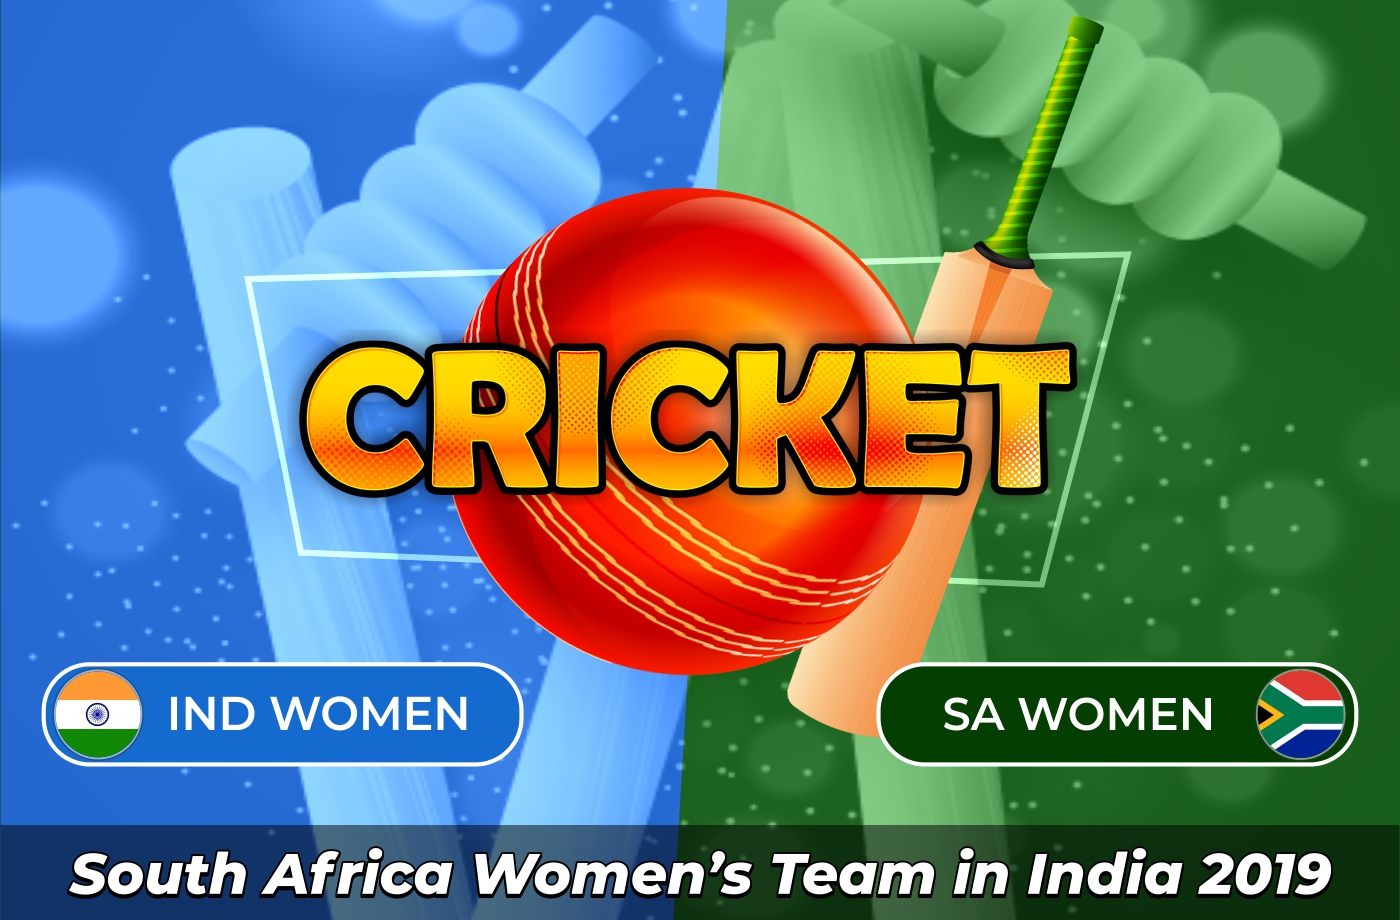 South African women's cricket team in India - 2019